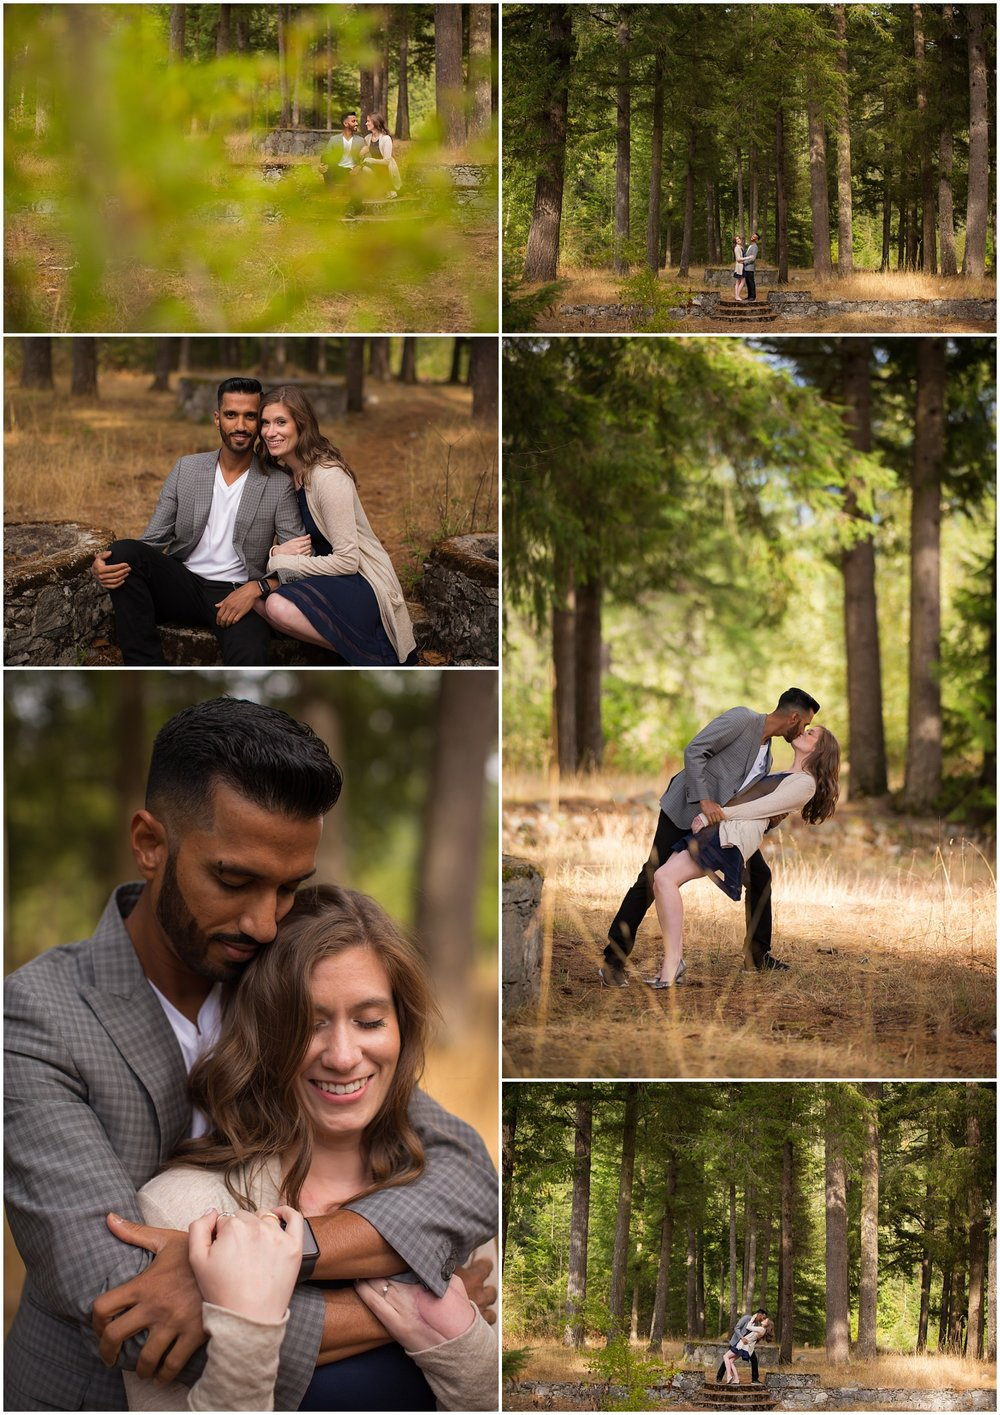 Amazind Day Photography - Chilliwack River Engagement Session - Chilliwack Engagement Photographer - Langley Engagement Photographer (3).jpg